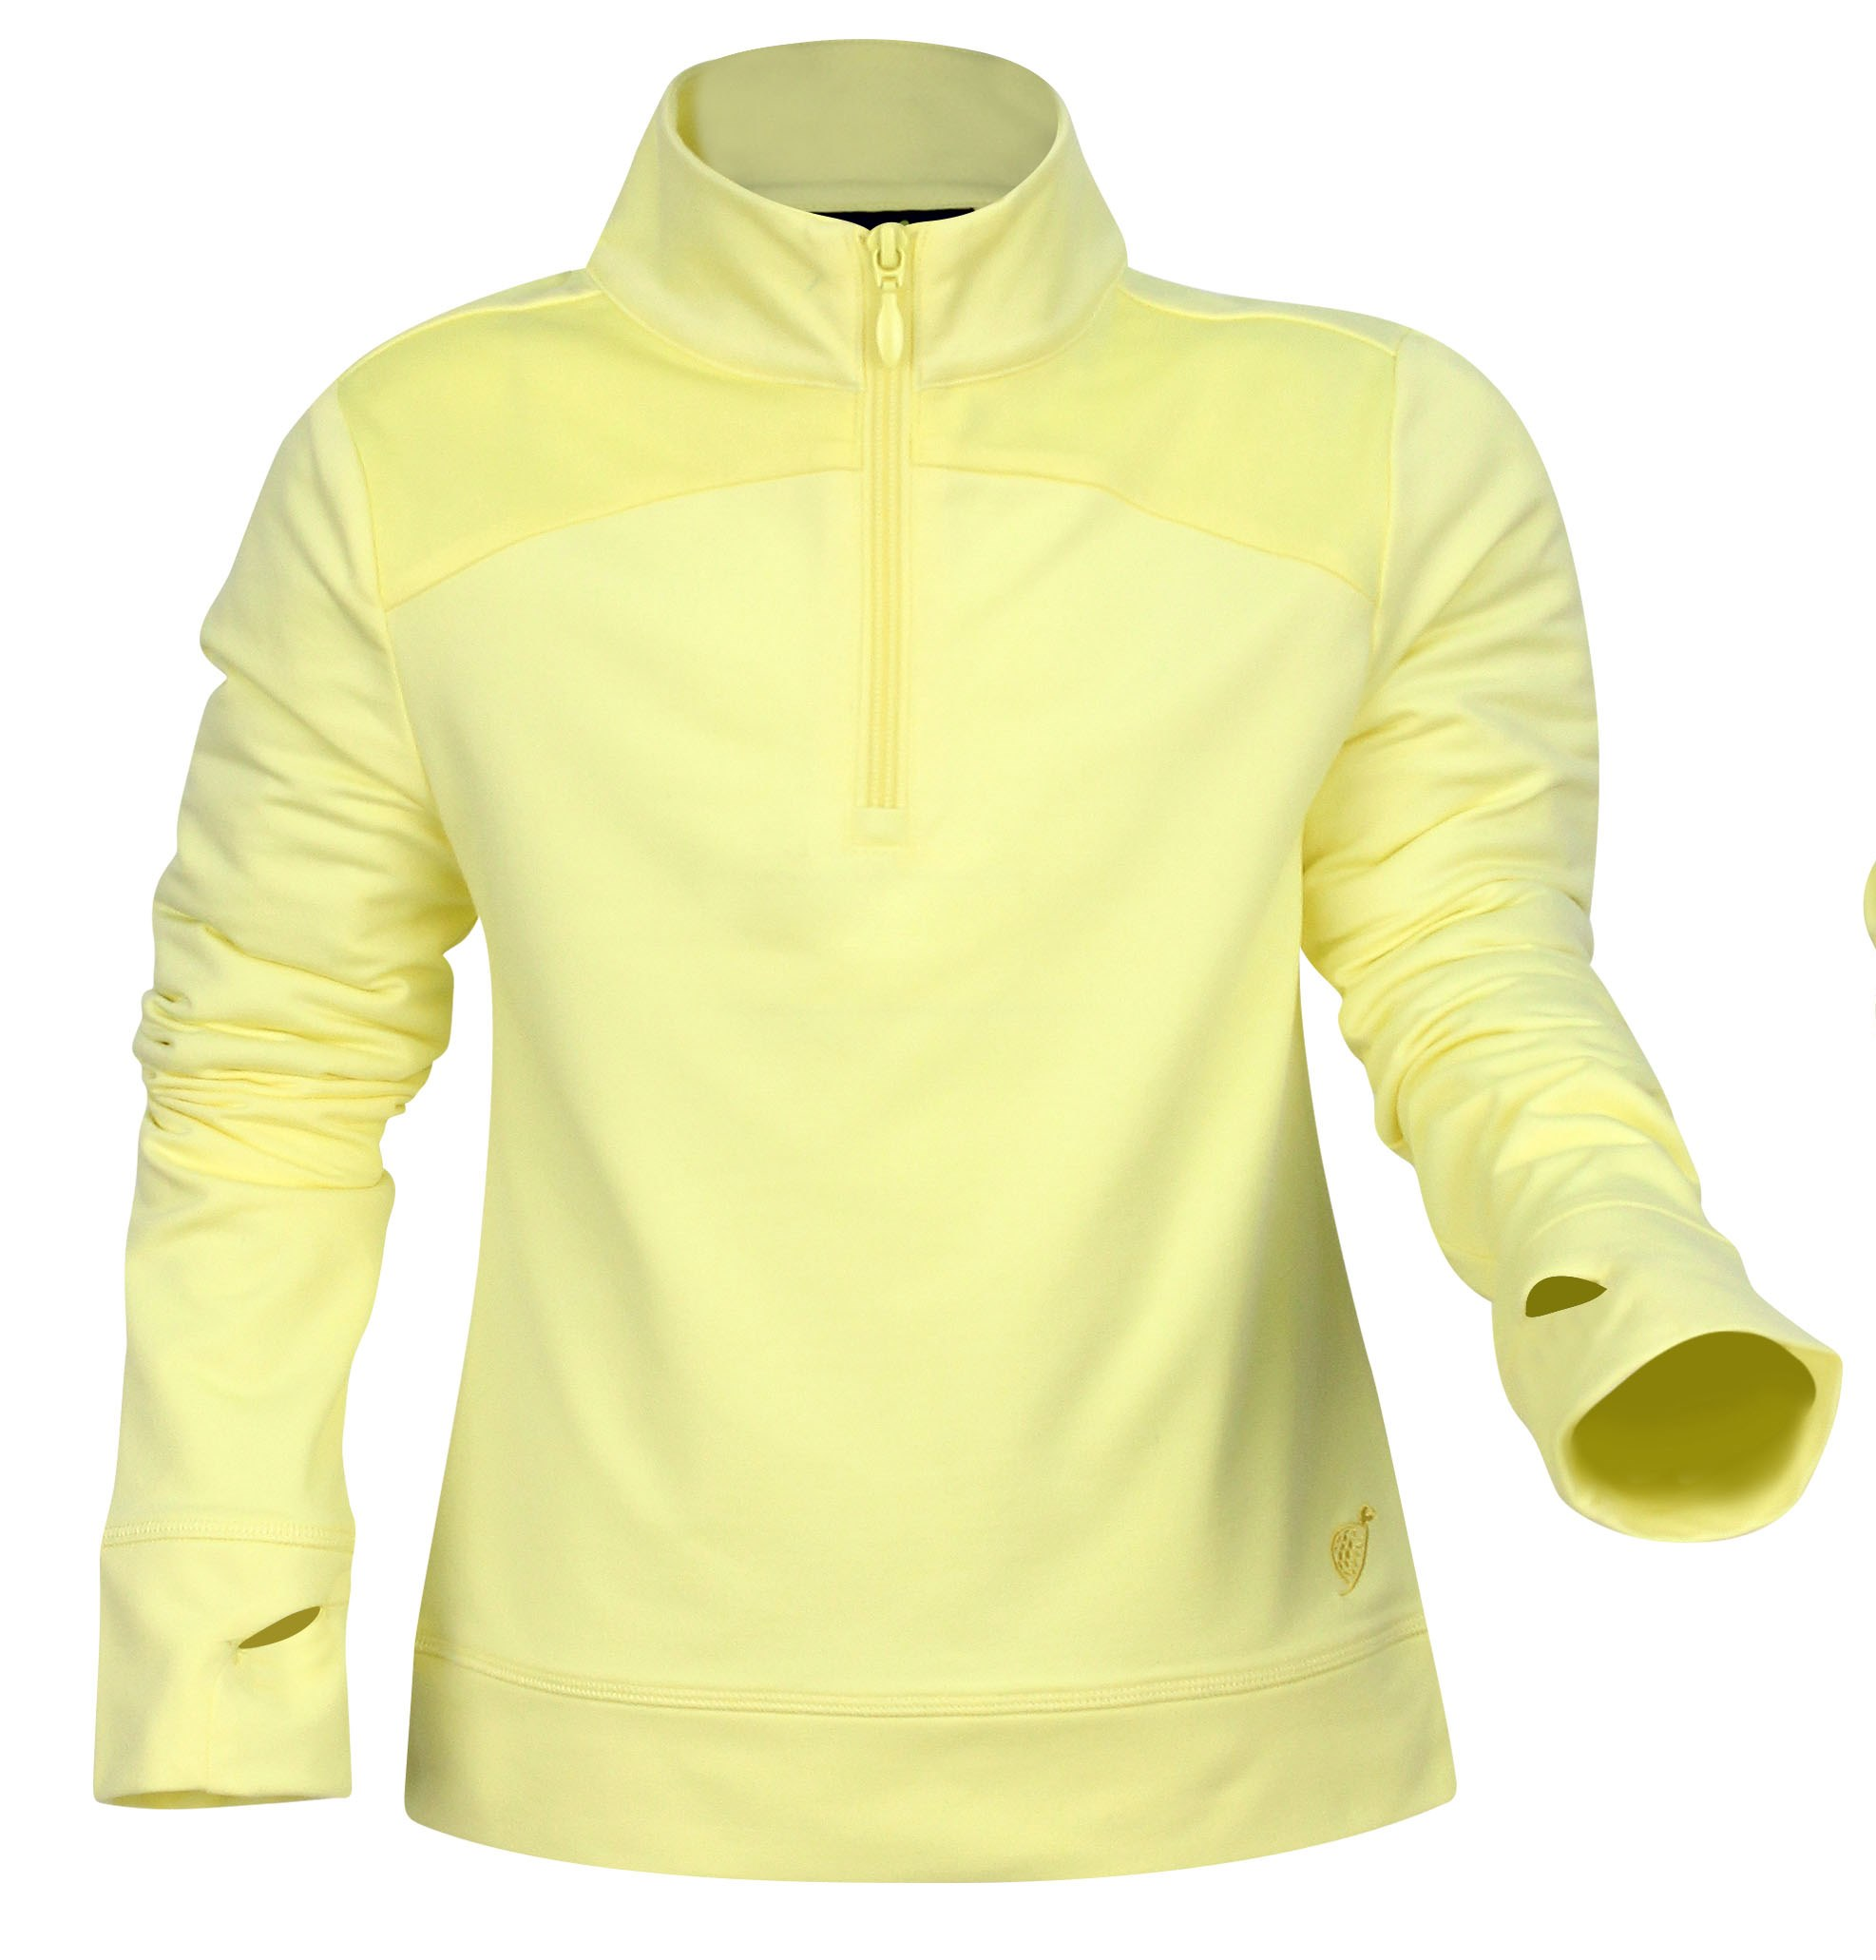 Alyssa 1/4 zip Pullover-Yellow